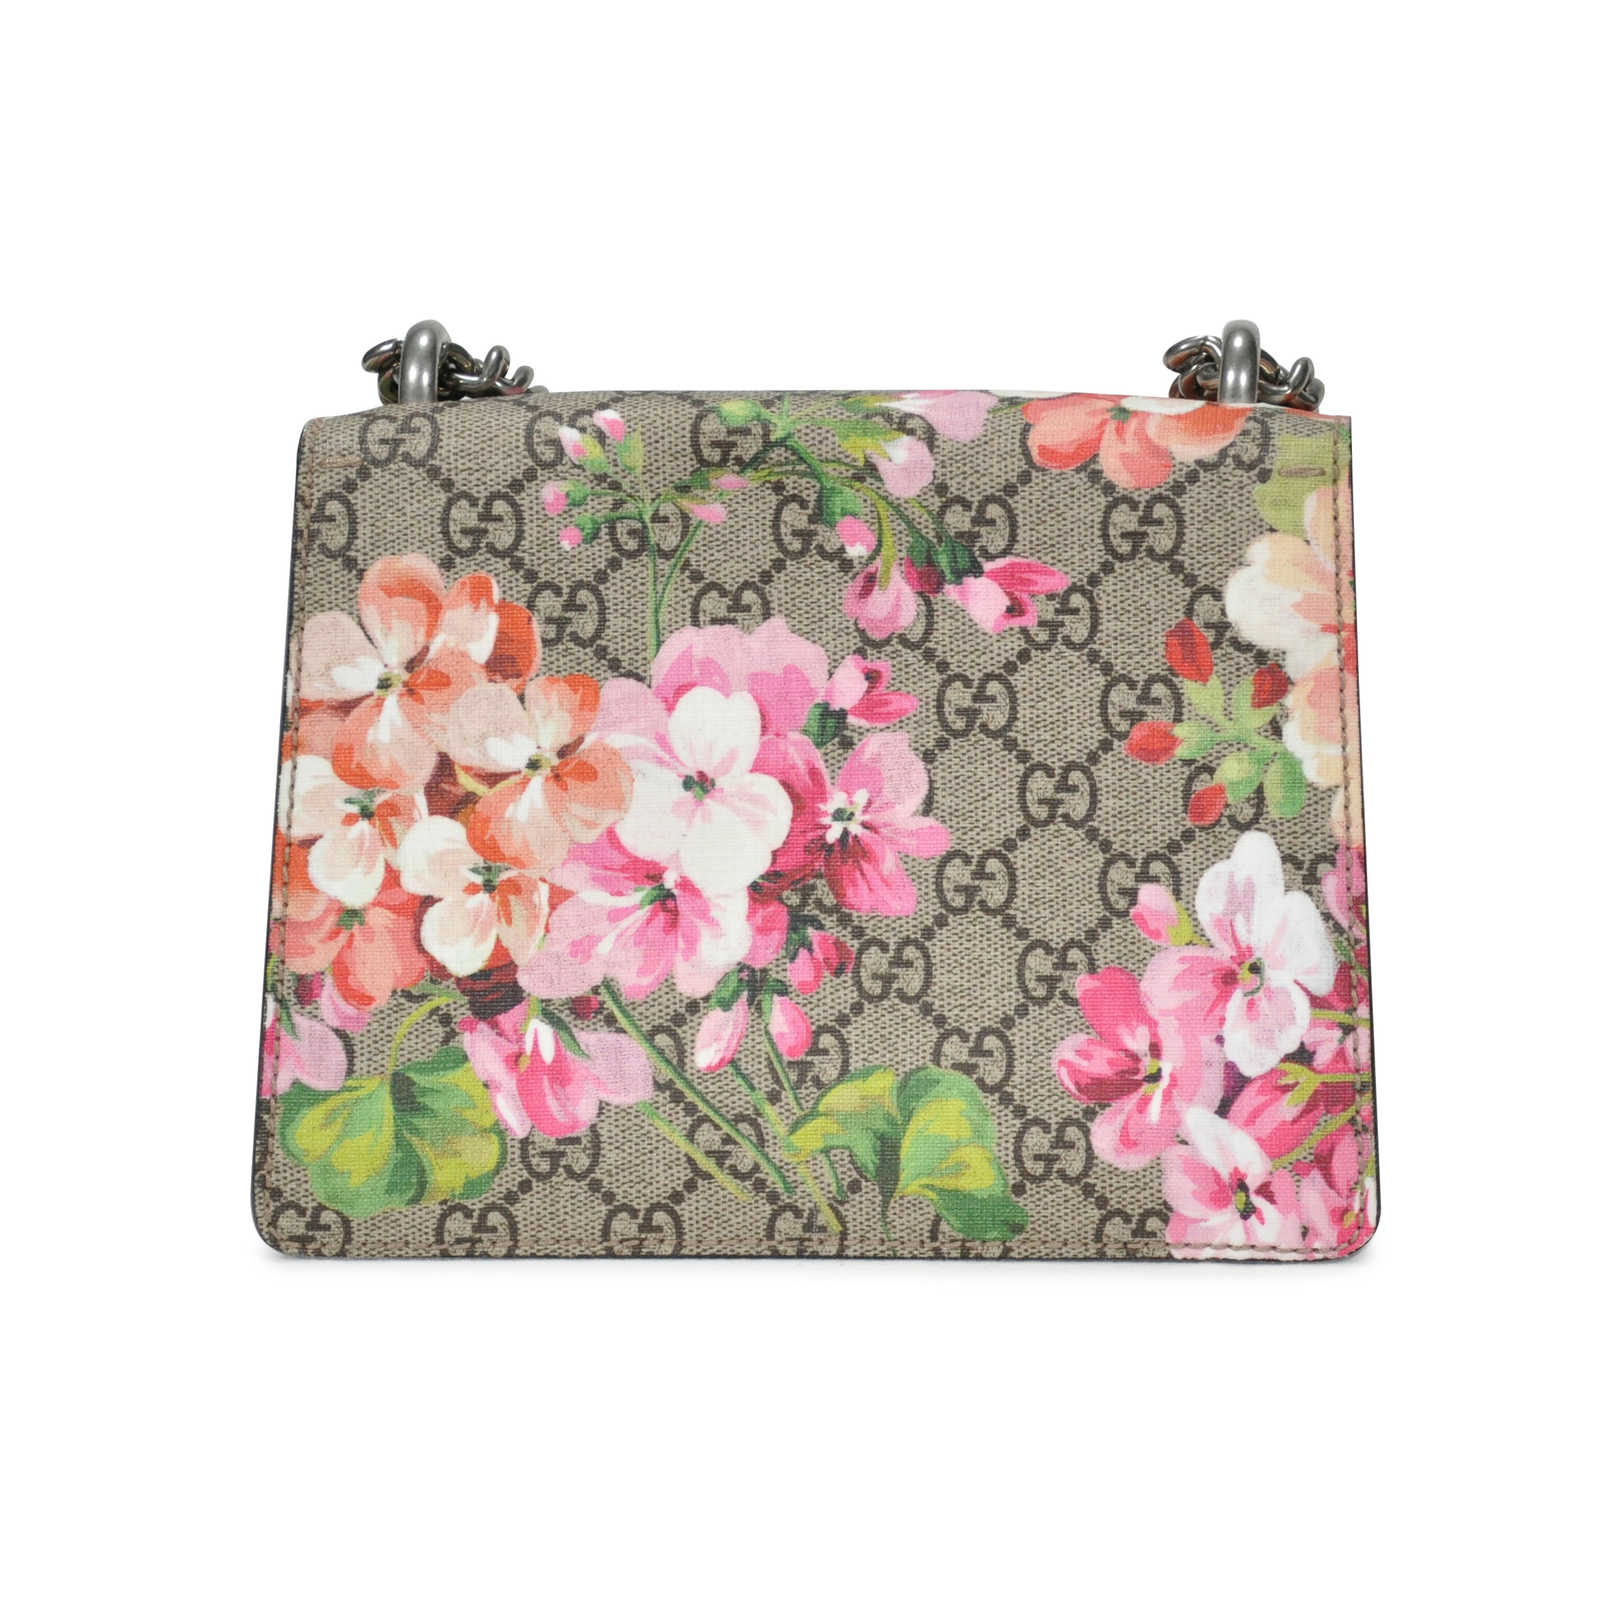 d2506e24622cb ... Authentic Second Hand Gucci Dionysus Blooms Mini Shoulder Bag  (PSS-249-00004) ...